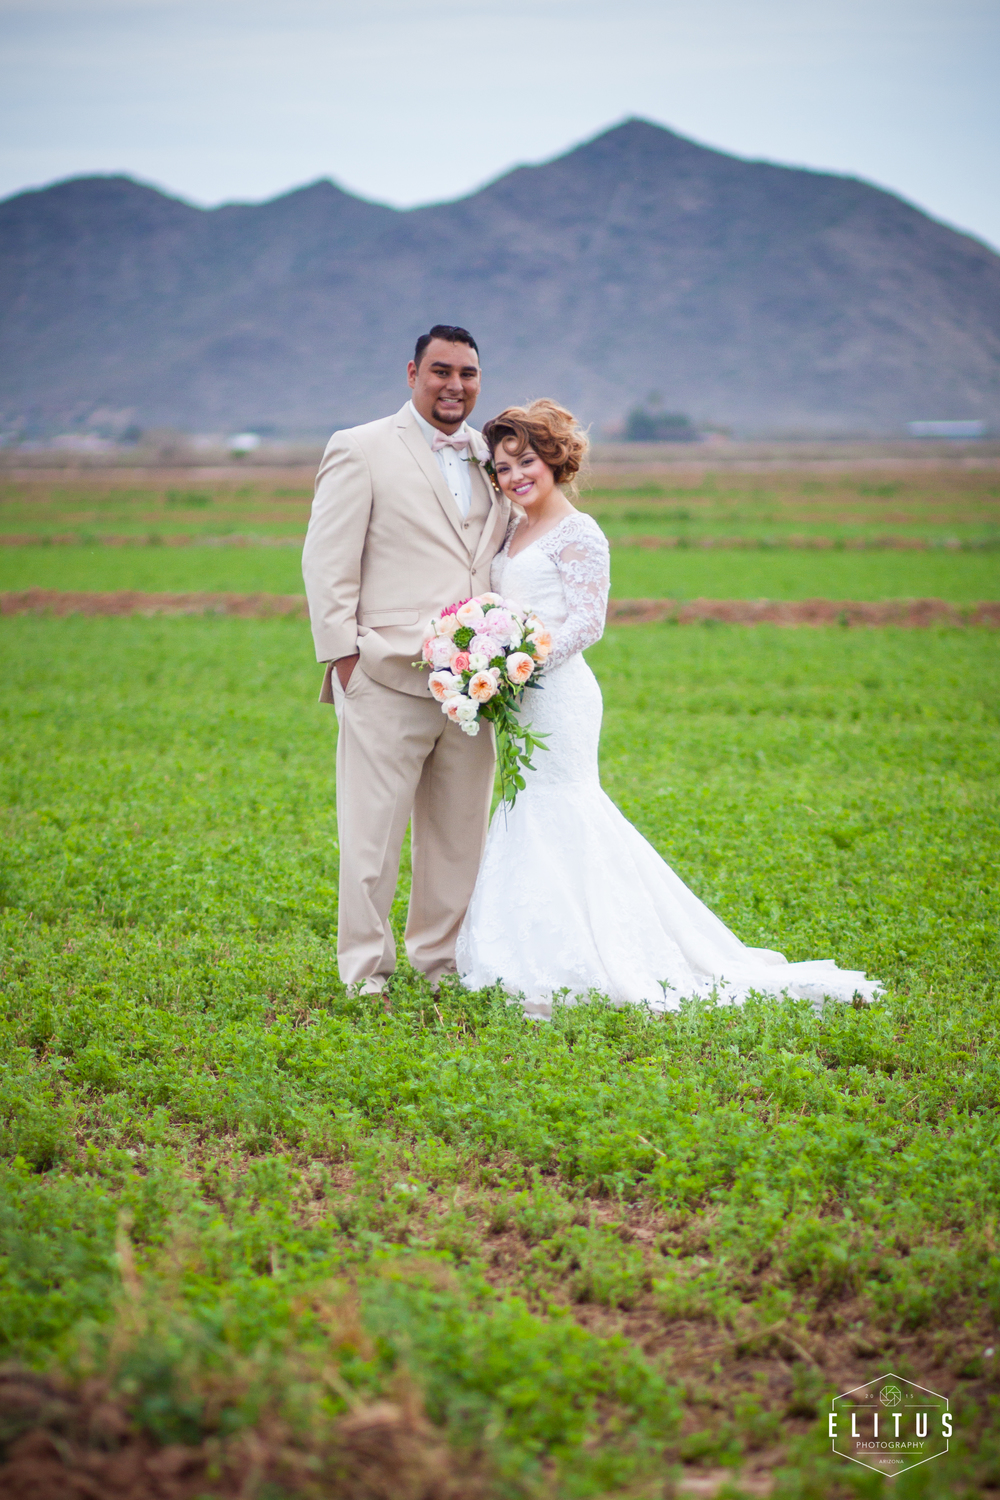 j&vlove_elitusphotography (124 of 142).jpg